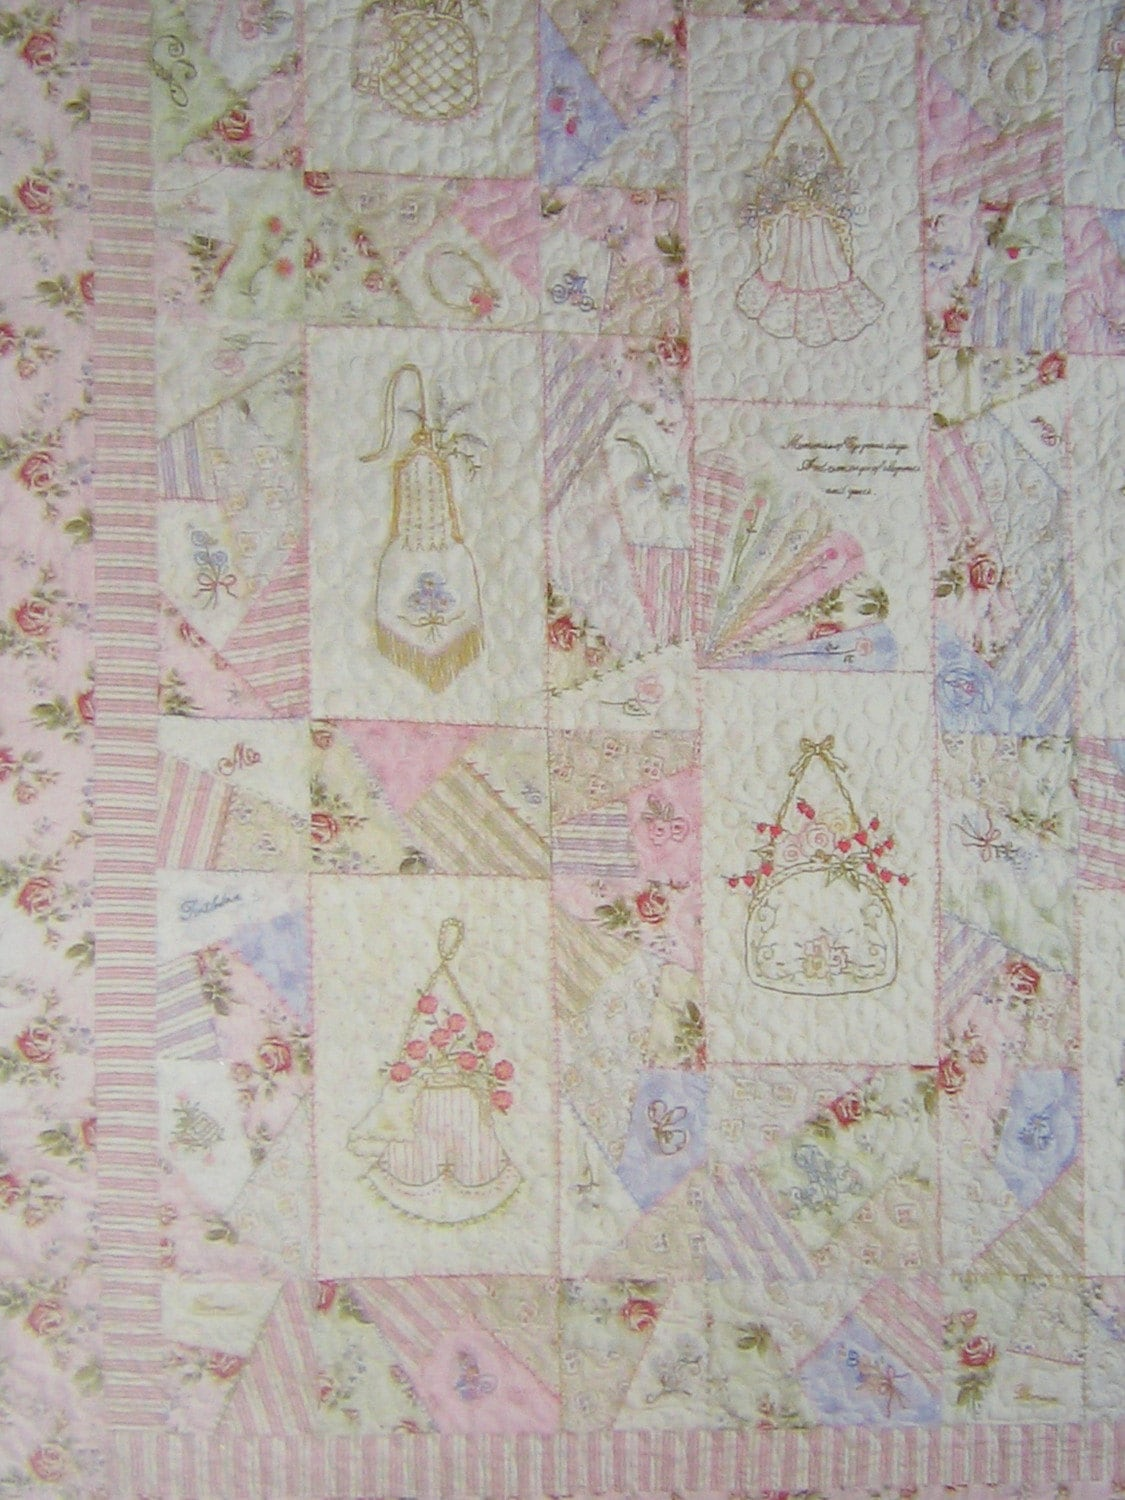 Crabapple hill quilt pattern hand embroidery by agardenofroses